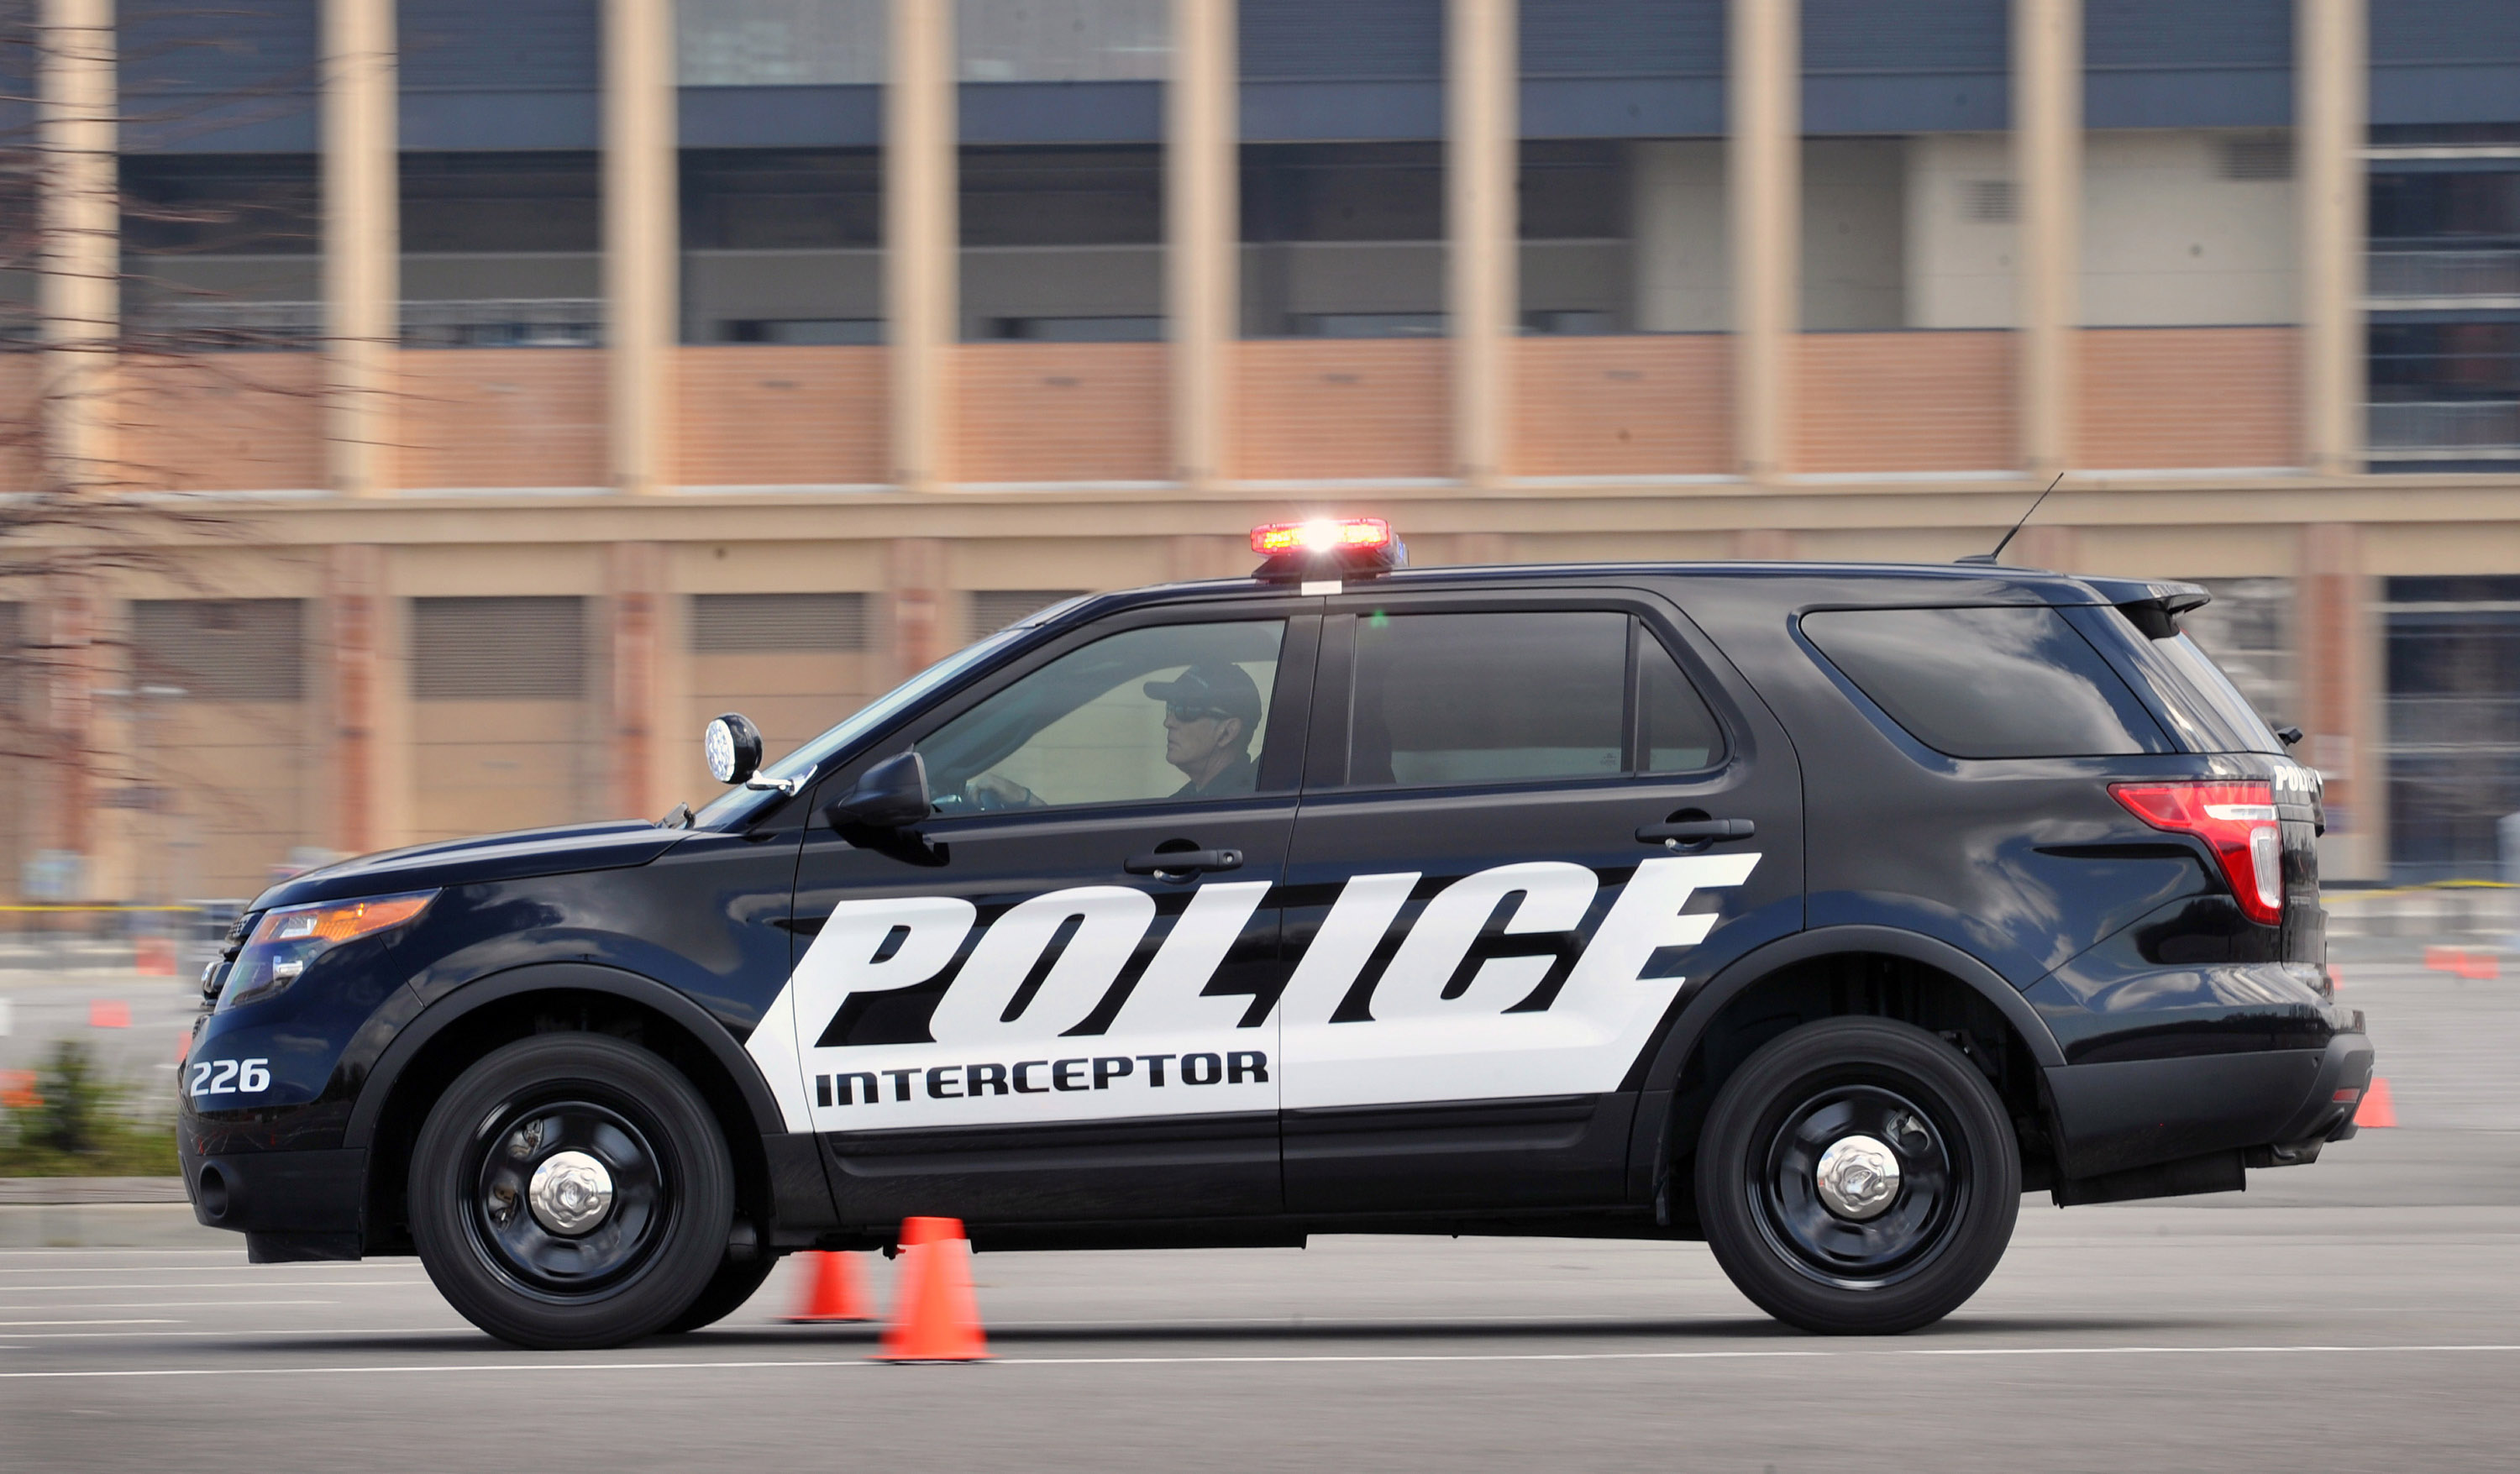 2011 Ford Police Interceptor Utility Vehicle - HD Pictures @ carsinvasion.com